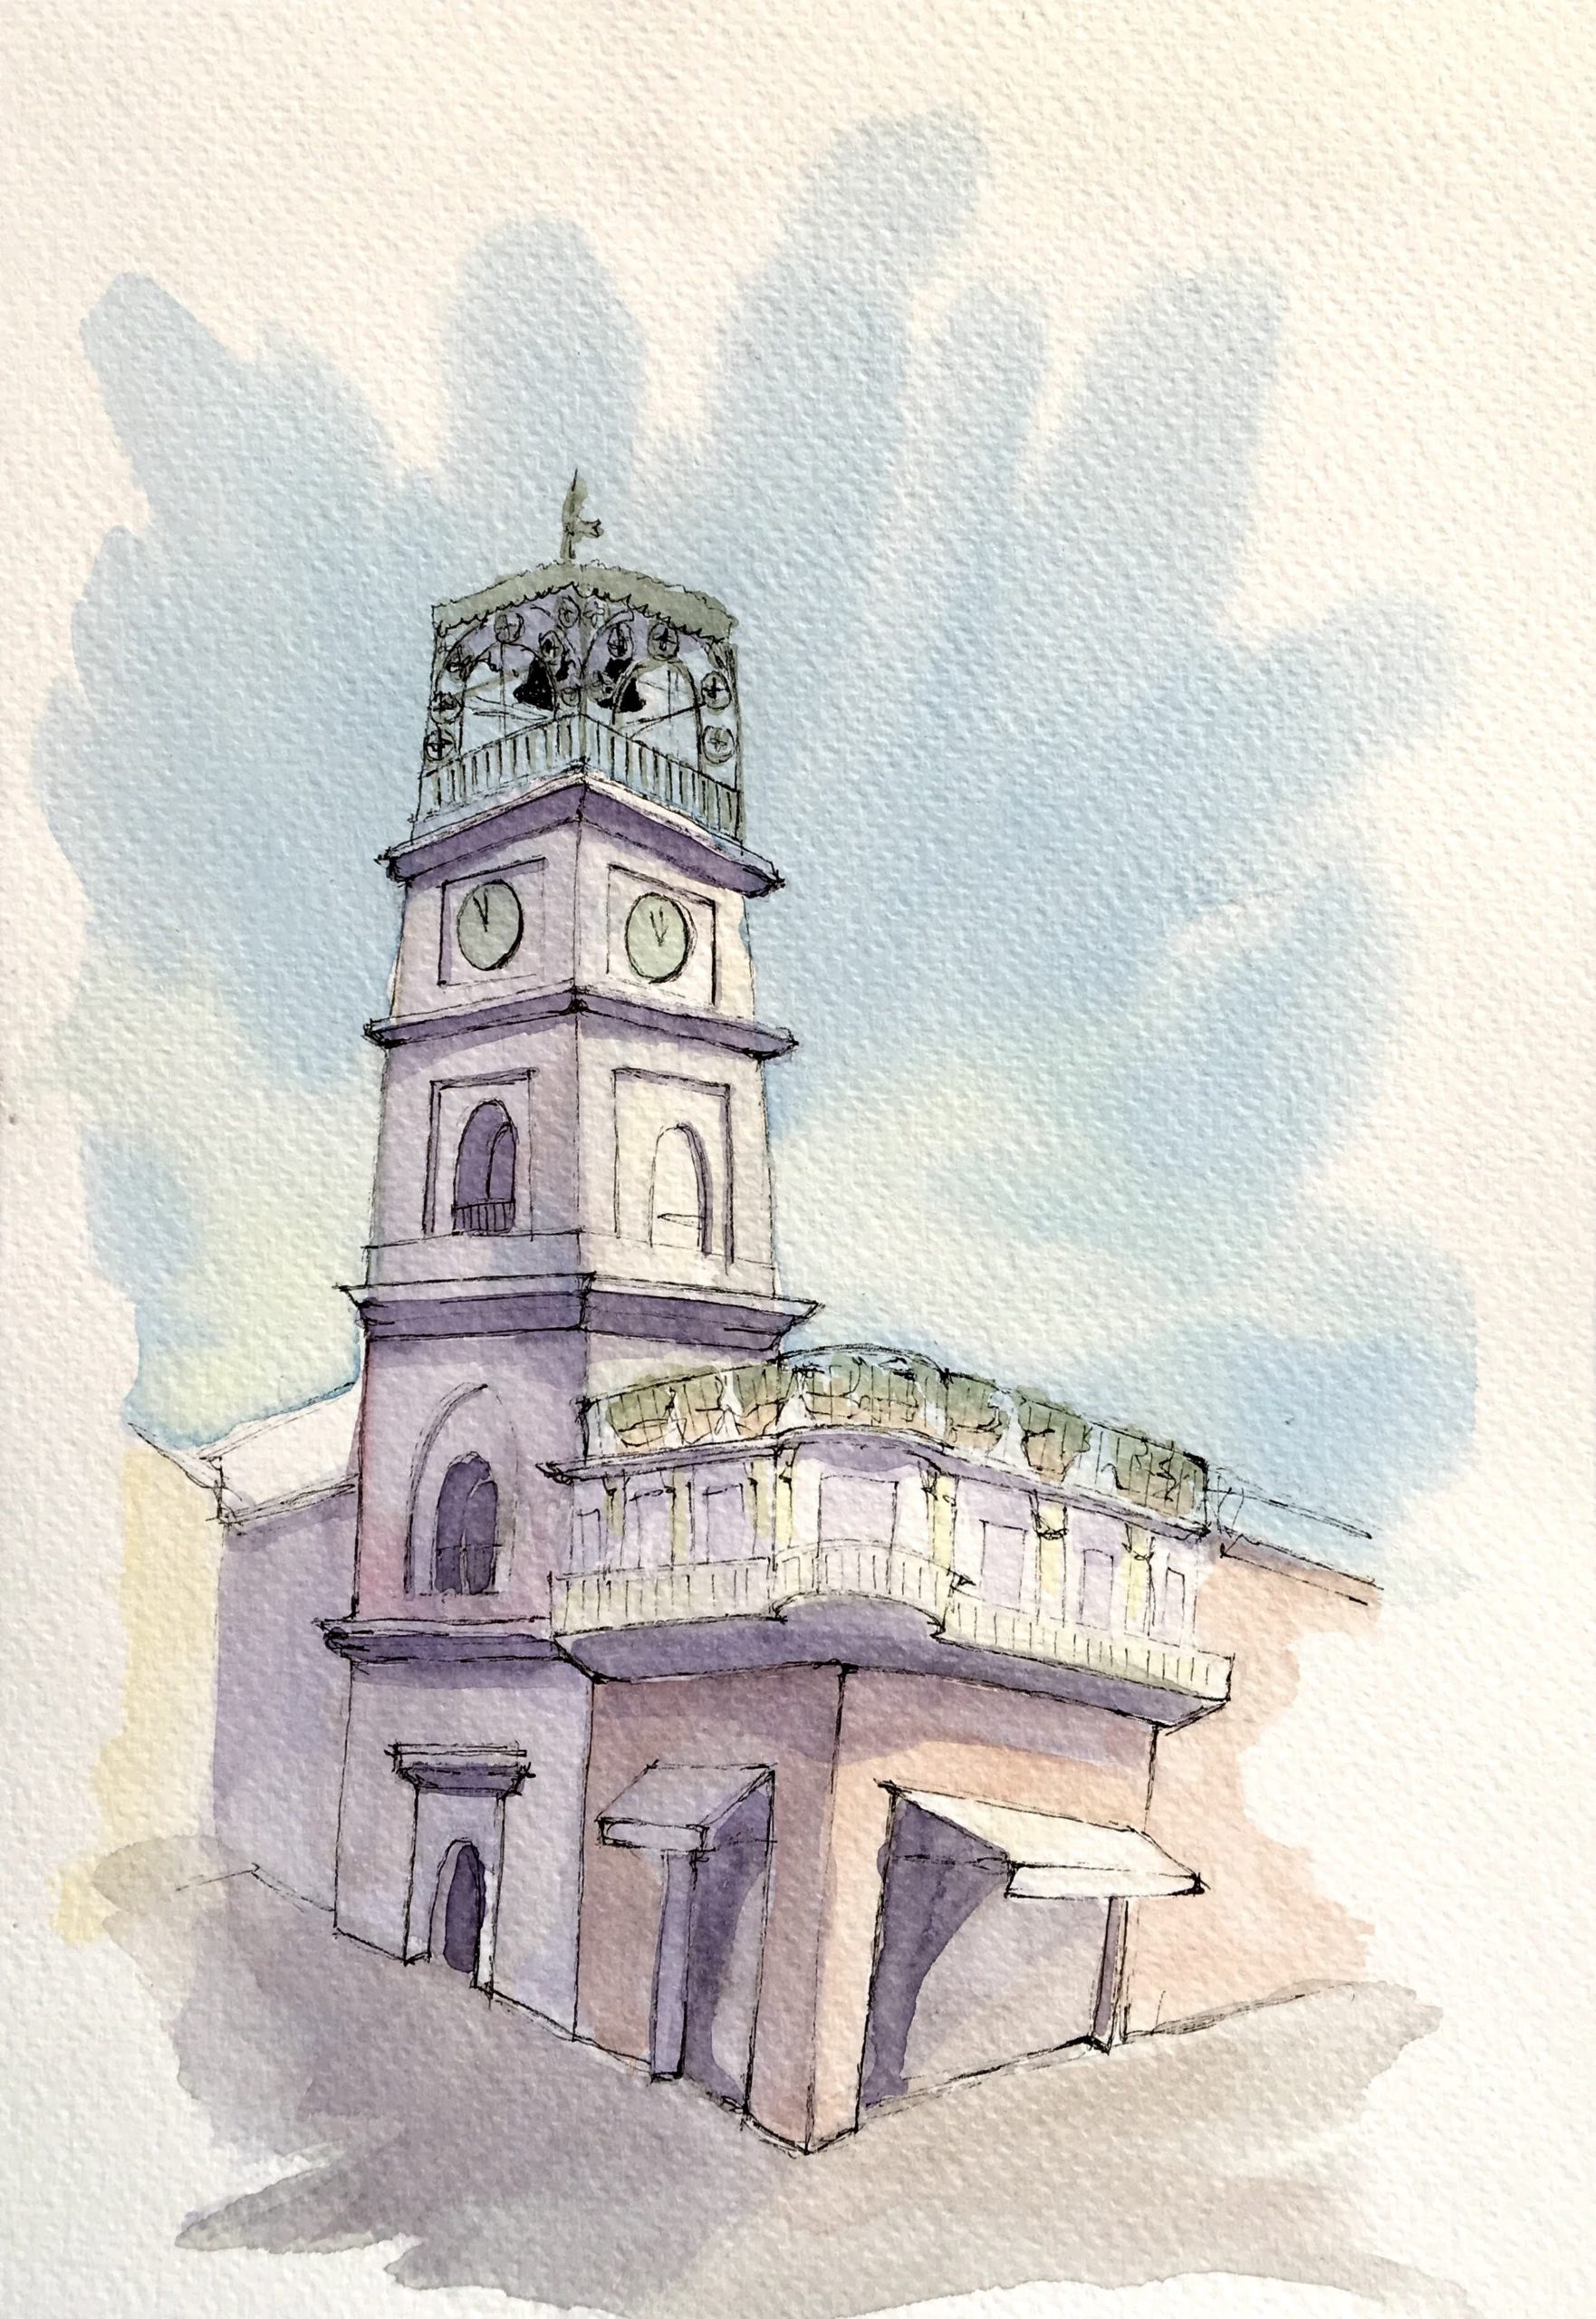 Painting of Bell Tower in San Gennaro Vesuviano